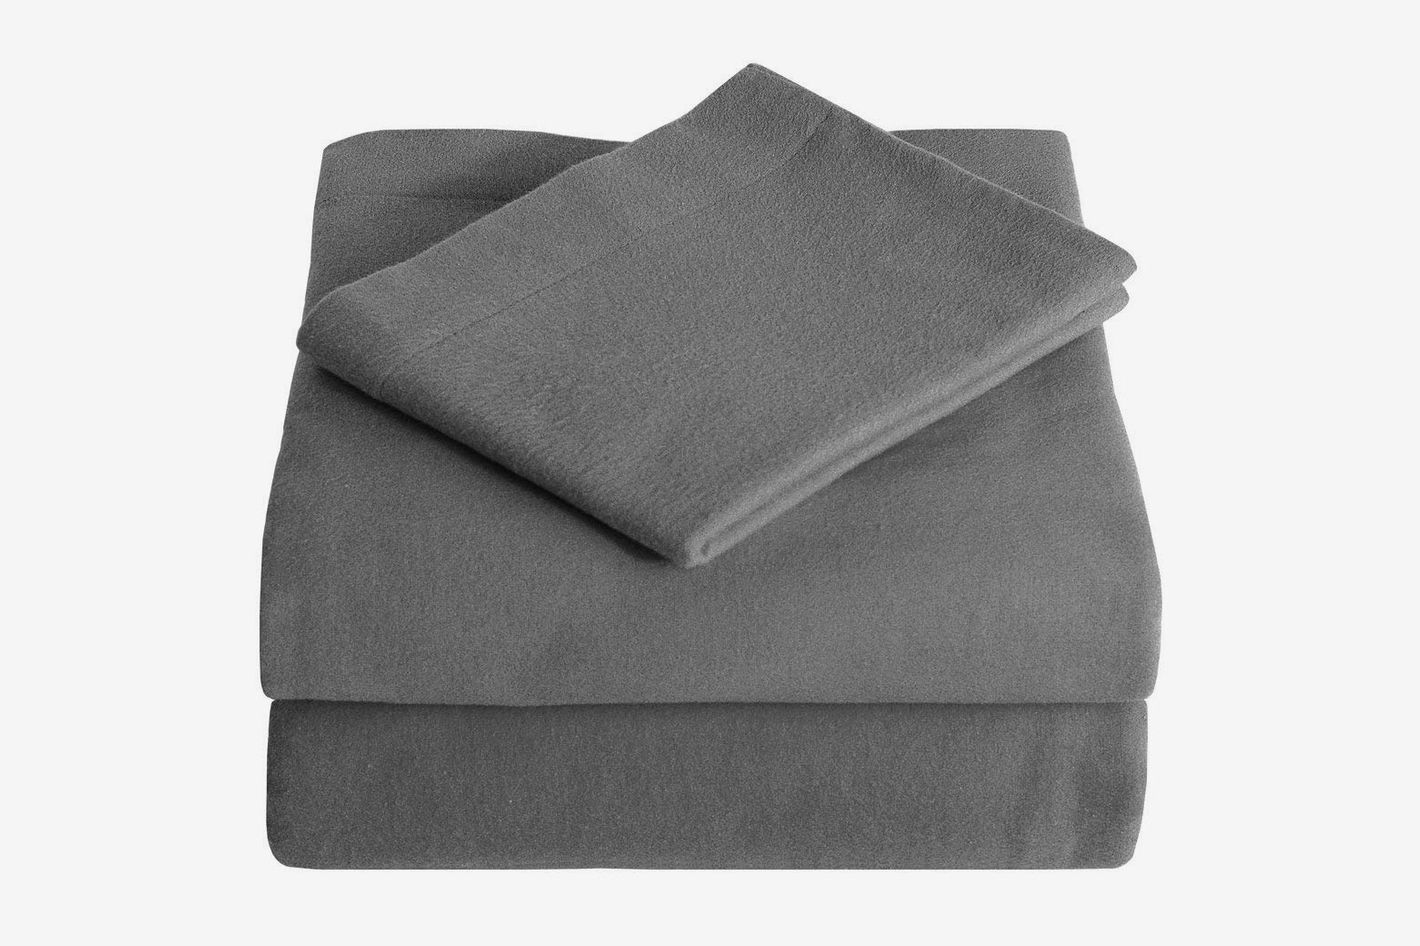 ab7838d9337e Bare Home 100% Cotton Velvet Heavyweight Double Brushed Flannel Sheet Set  (Queen)